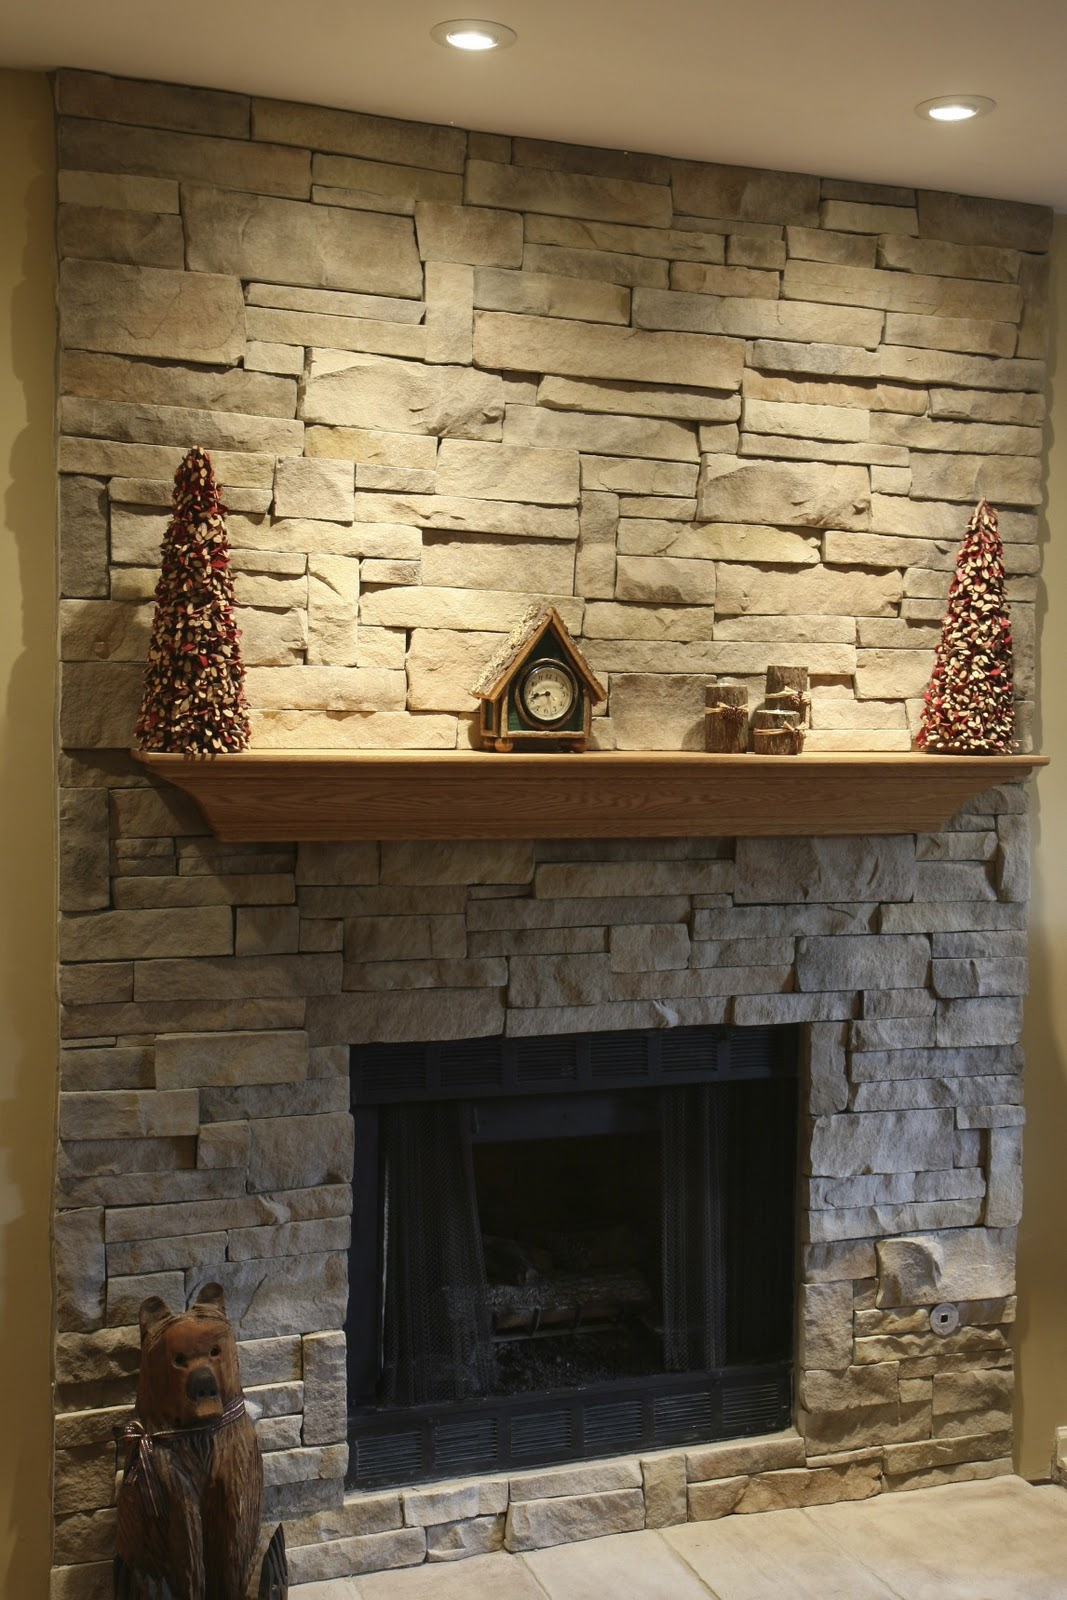 North Star Stone- Stone Fireplaces & Stone Exteriors: Ledge Stone ...